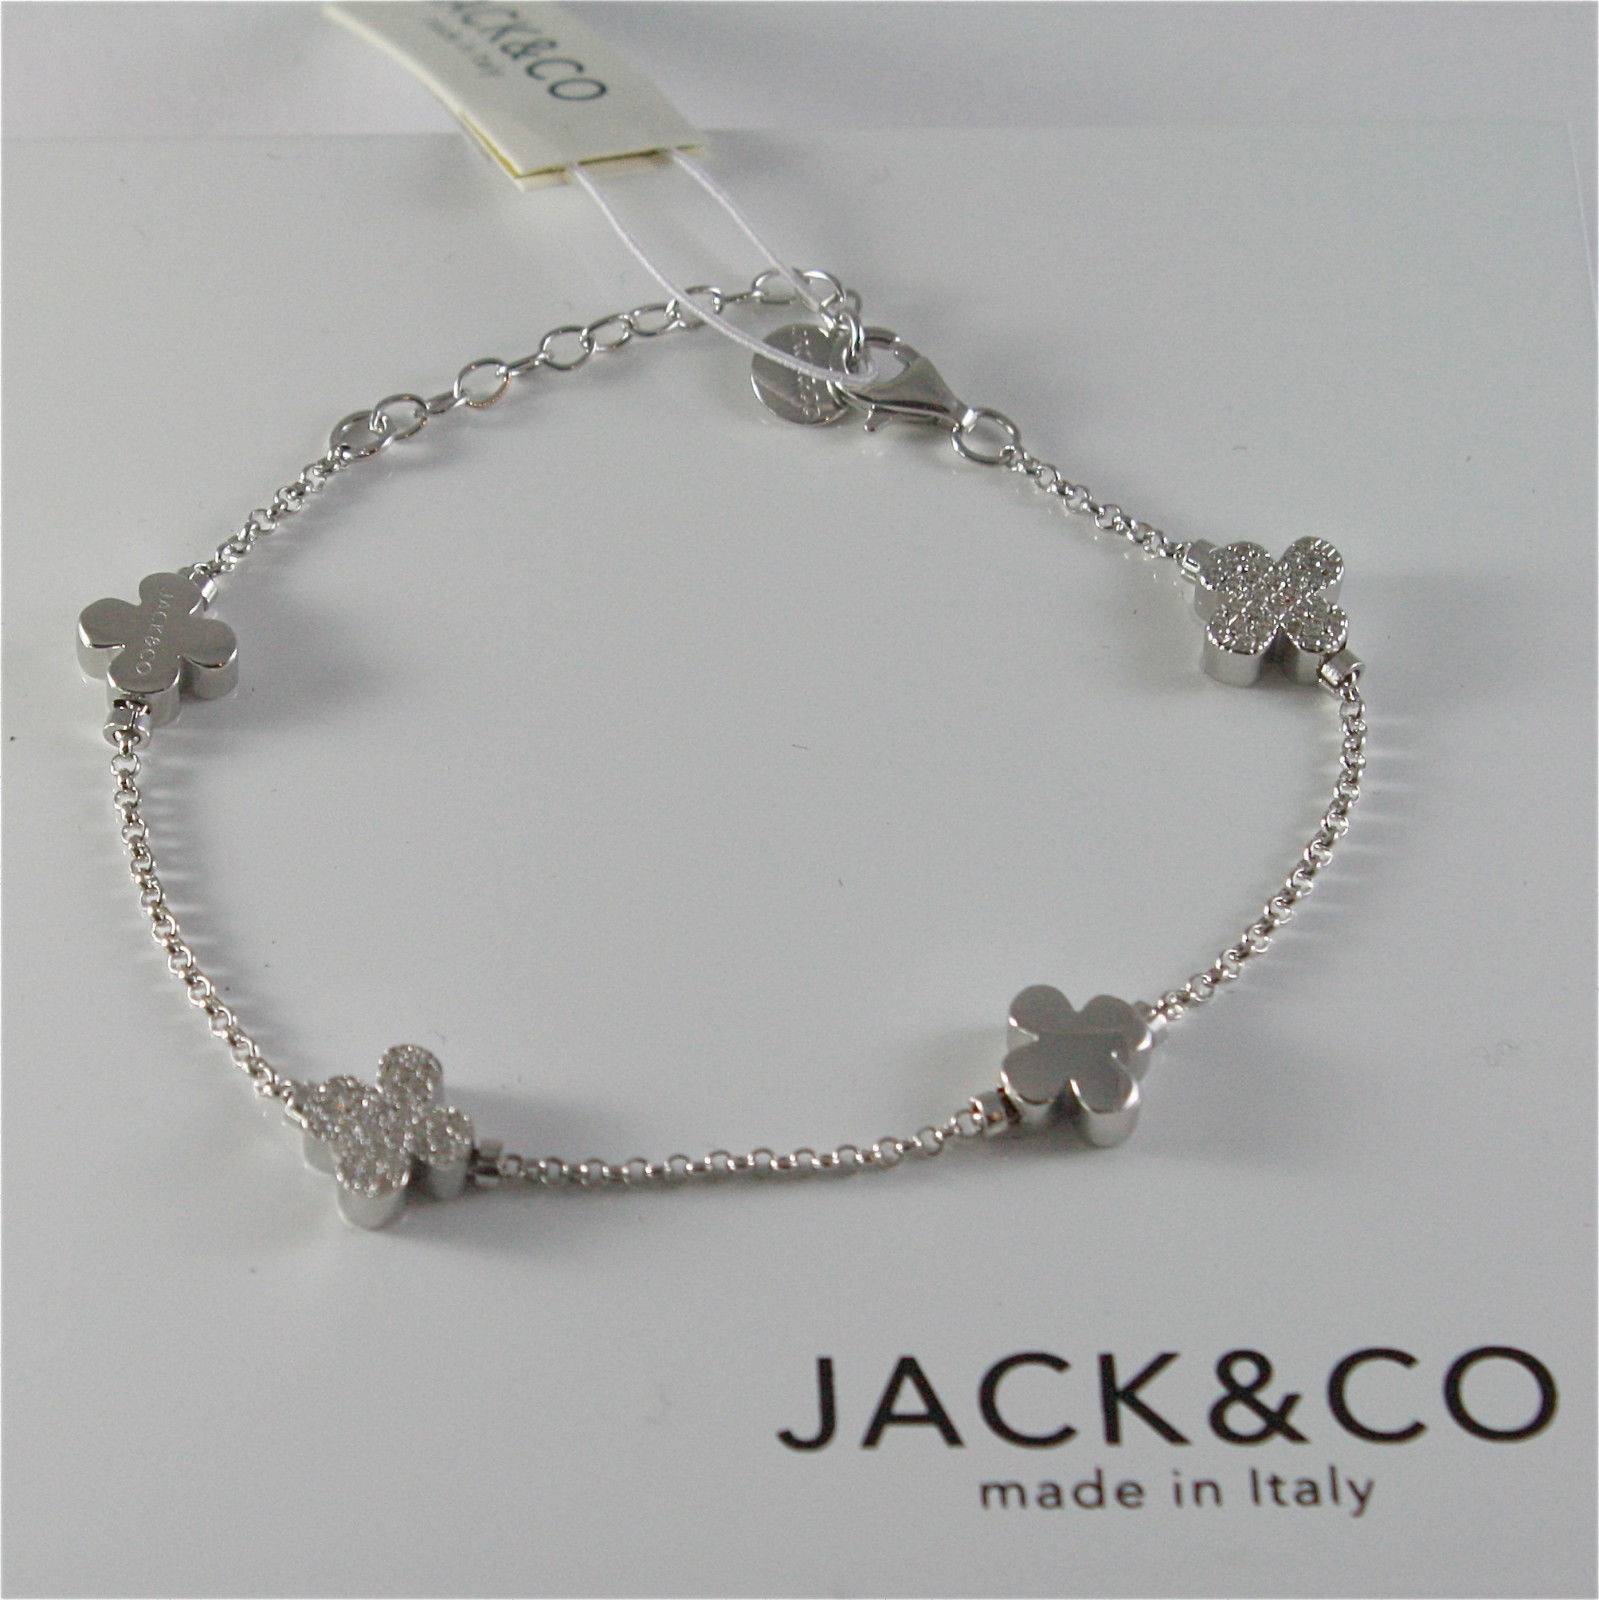 SILVER 925 BRACELET JACK&CO WITH FOUR-LEAF CLOVER AND ZIRCONIA CUBIC JCB0742